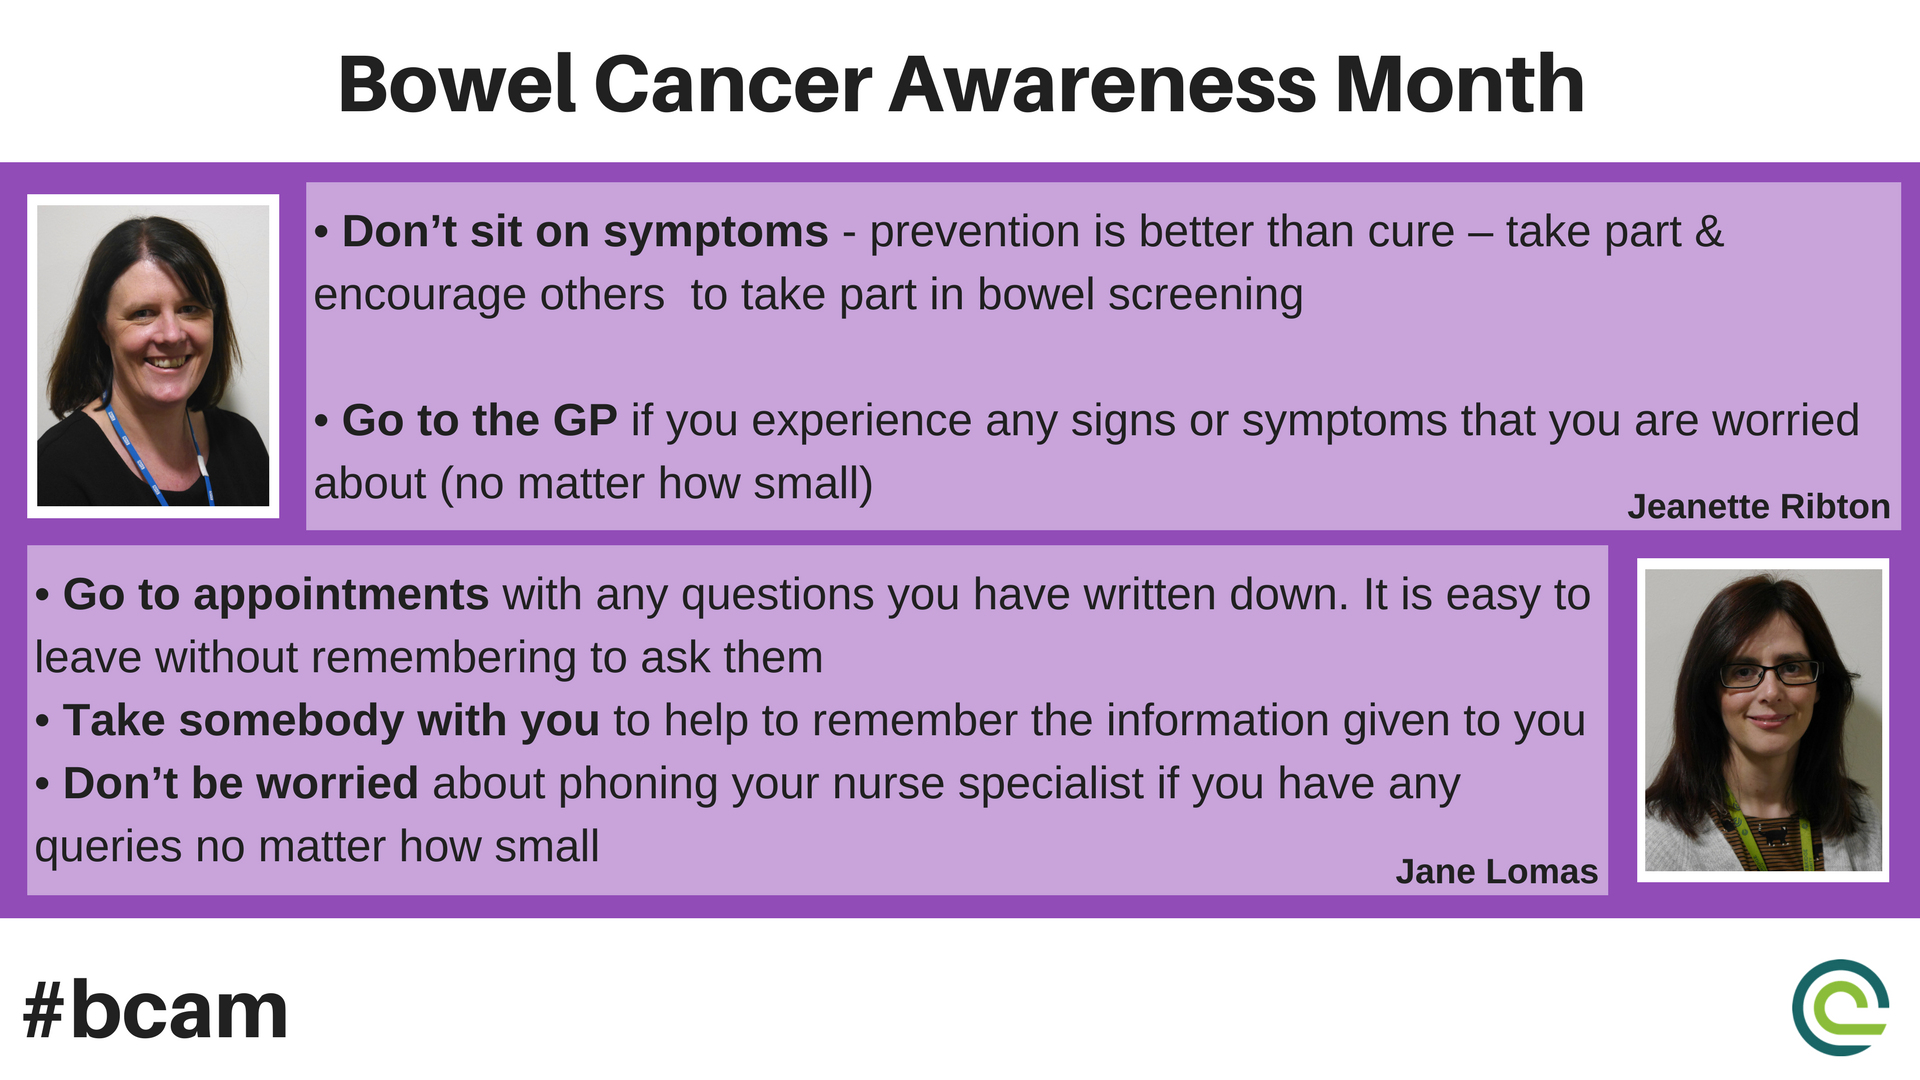 Clatterbridgecc Nhs On Twitter Prevention Is Better Than Cure Colorectal Oncology Nurse Consultants Jeanette Ribton Jane Lomas Provide Some Important Advice And Guidance This Bowel Cancer Awareness Month Bcam Bowelcancer